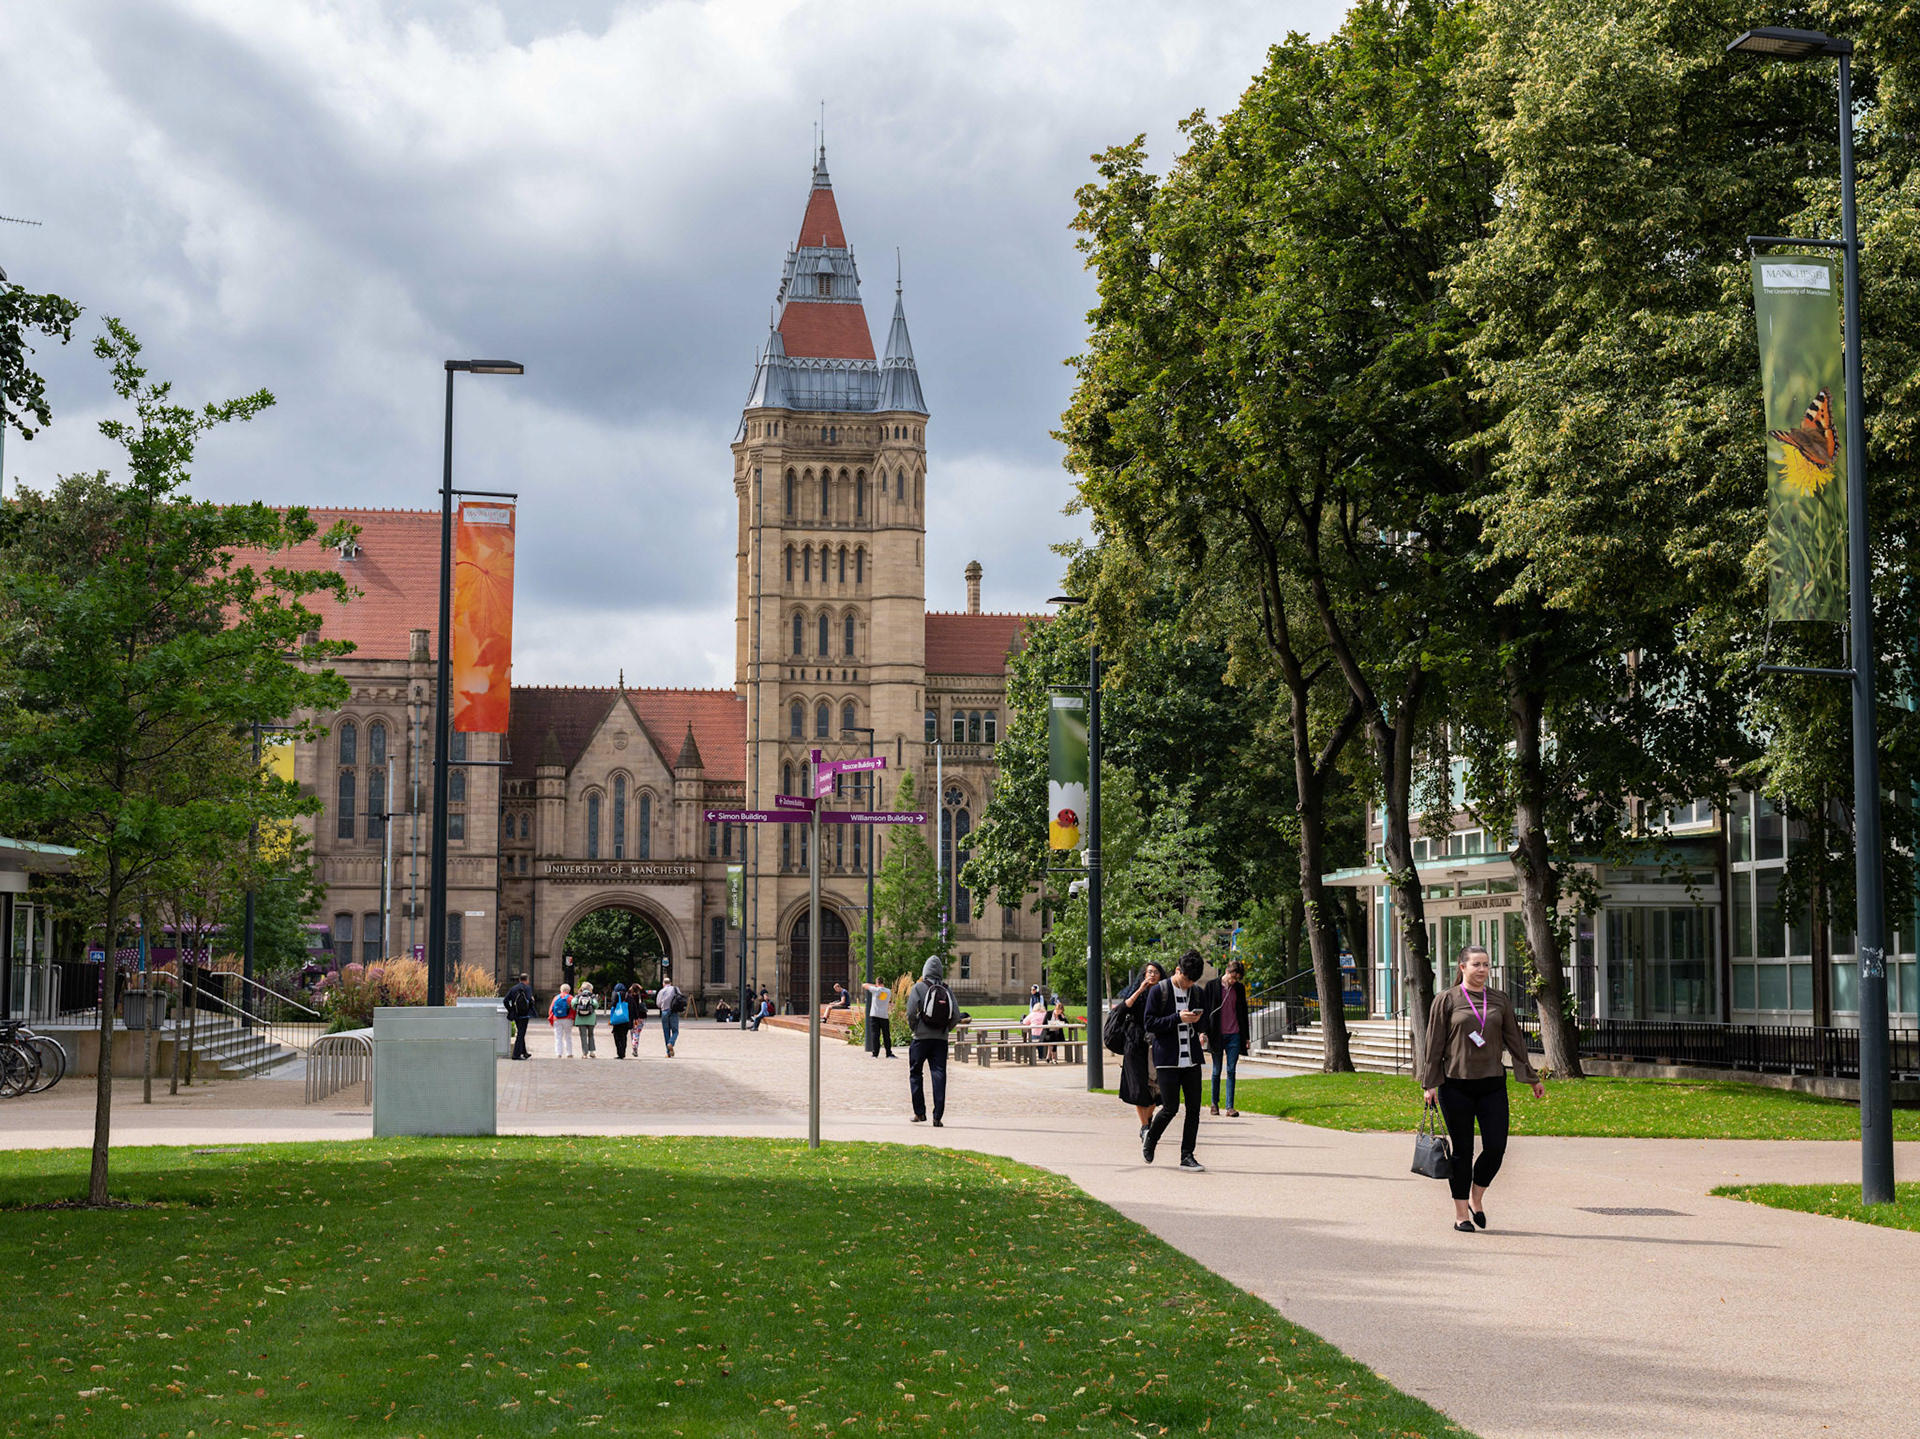 Commercial Photography University of Manchester Campus with students walking through with background of the main tower on a sunny day